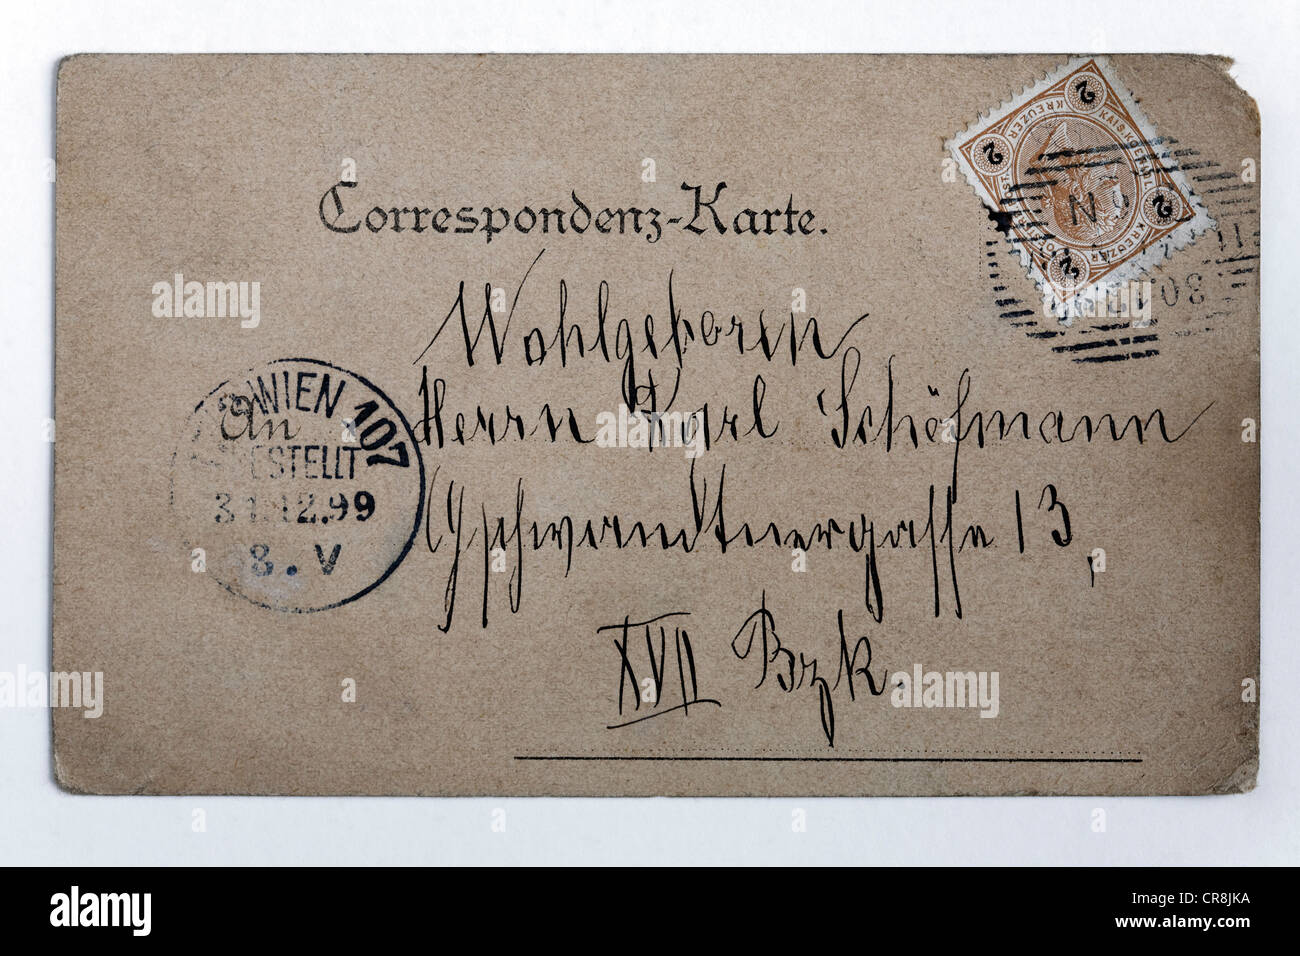 Historical postcard with address and stamp from the era of the Austrian Empire, Vienna, Austria, postmarked 1899 - Stock Image